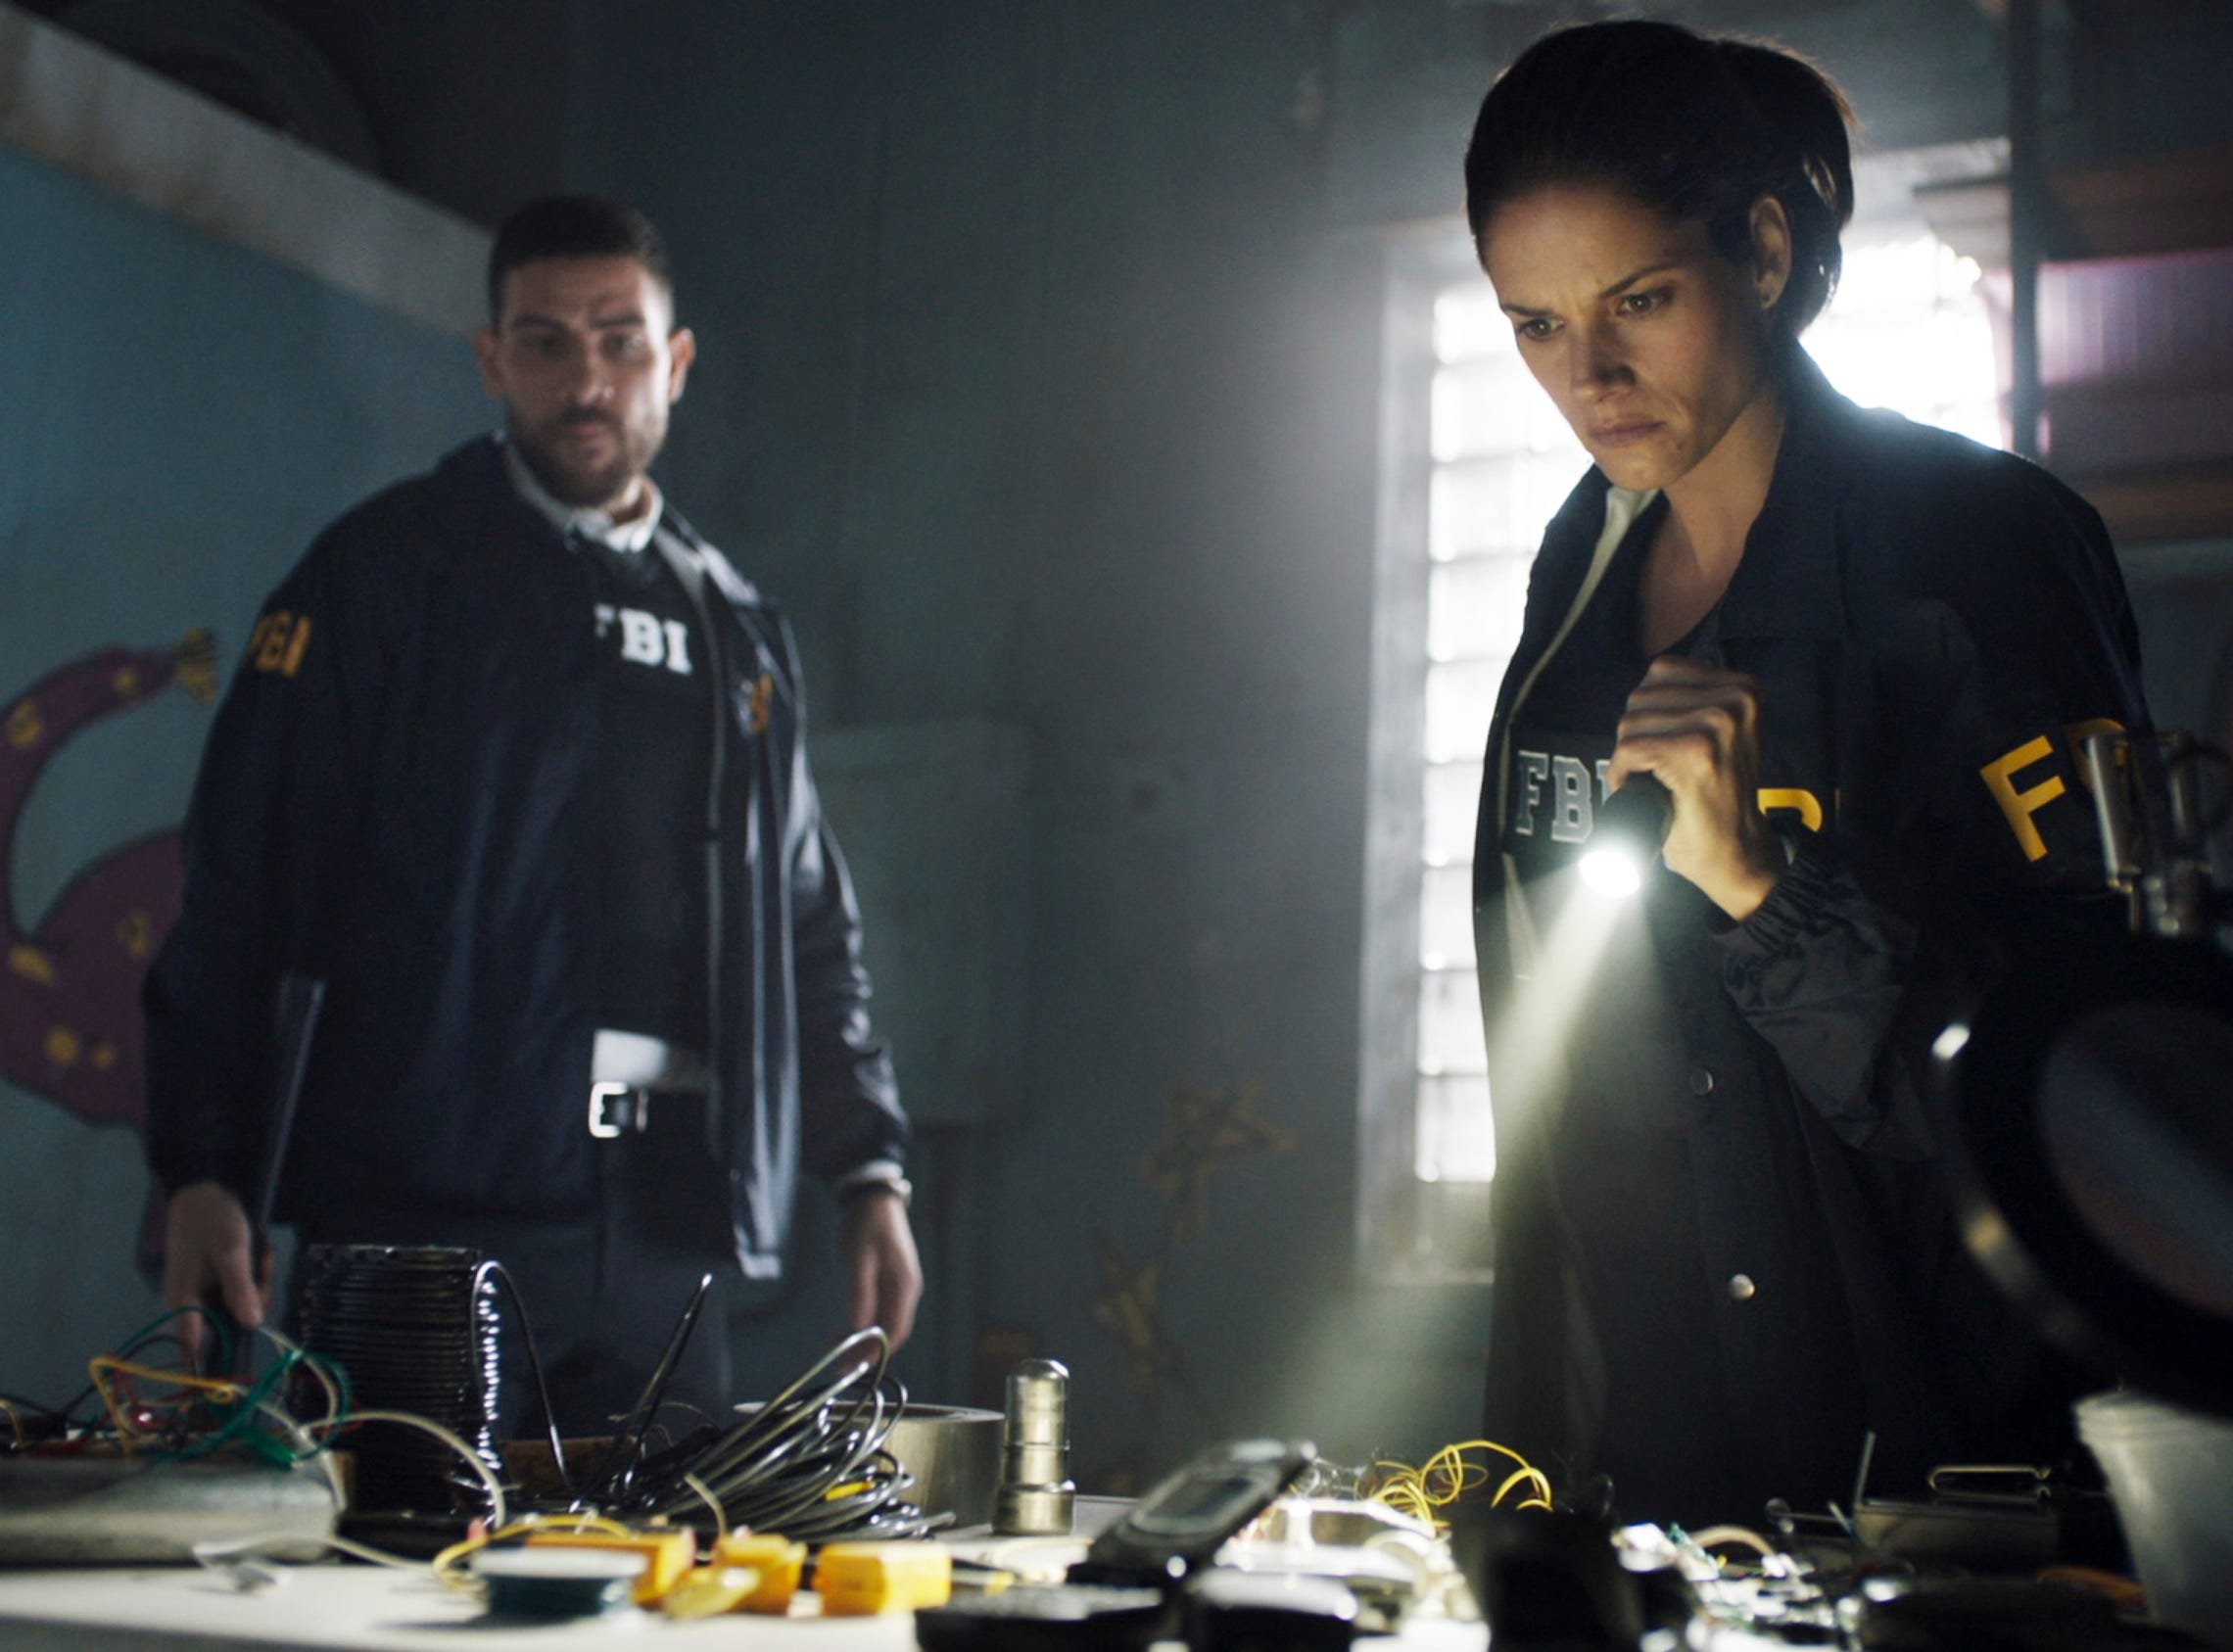 Missy Peregrym, right, and Zeeko Zaki, play special agents investigating federal crimes in New York in Dick Wolf's new CBS drama, 'FBI.'